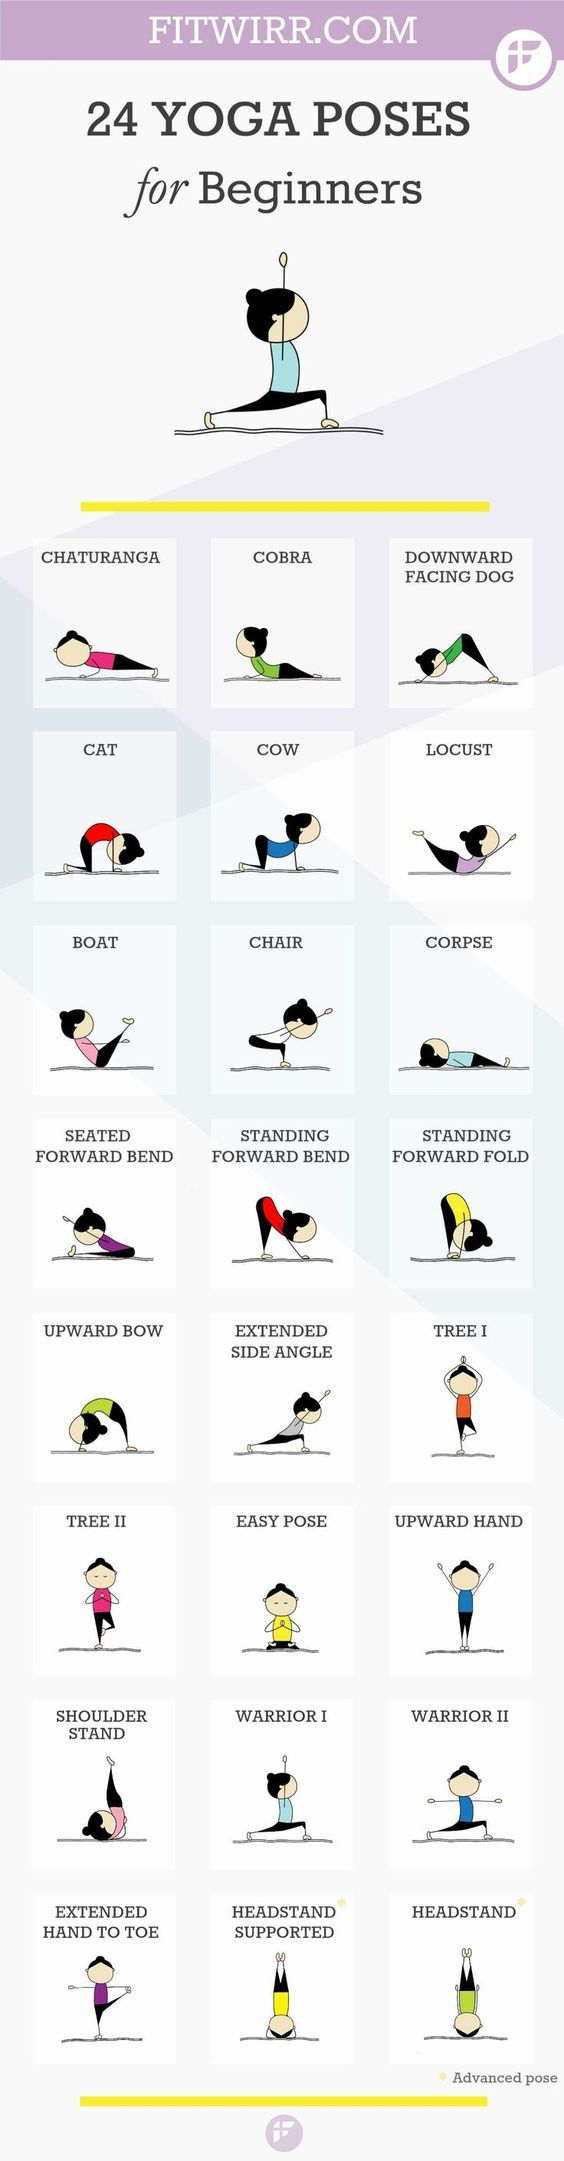 DownDog Healthy Lifestyle Tips: 24 Beginners Yoga Poses You Can Start with at Ho...